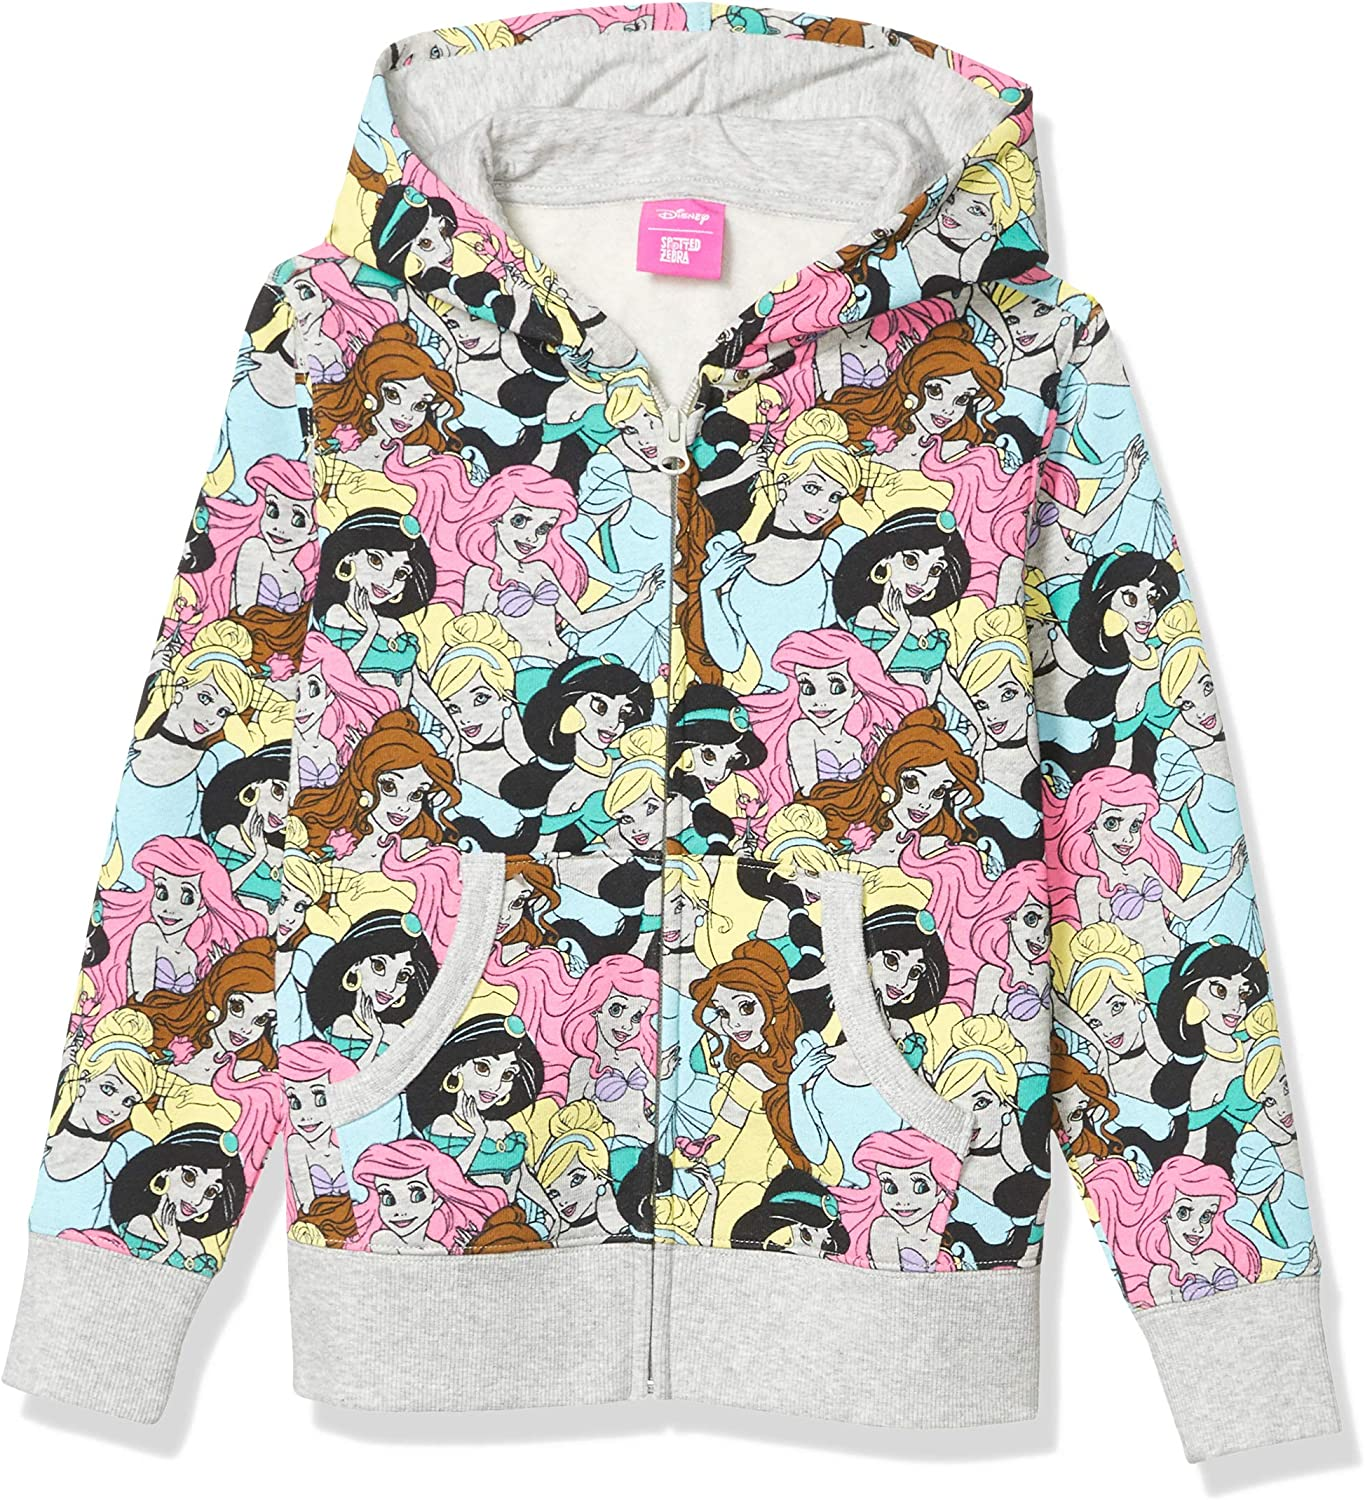 Spotted Zebra Girls Disney Star Wars Marvel Frozen Princess Fleece Zip-Up Sweatshirt Hoodies Brand